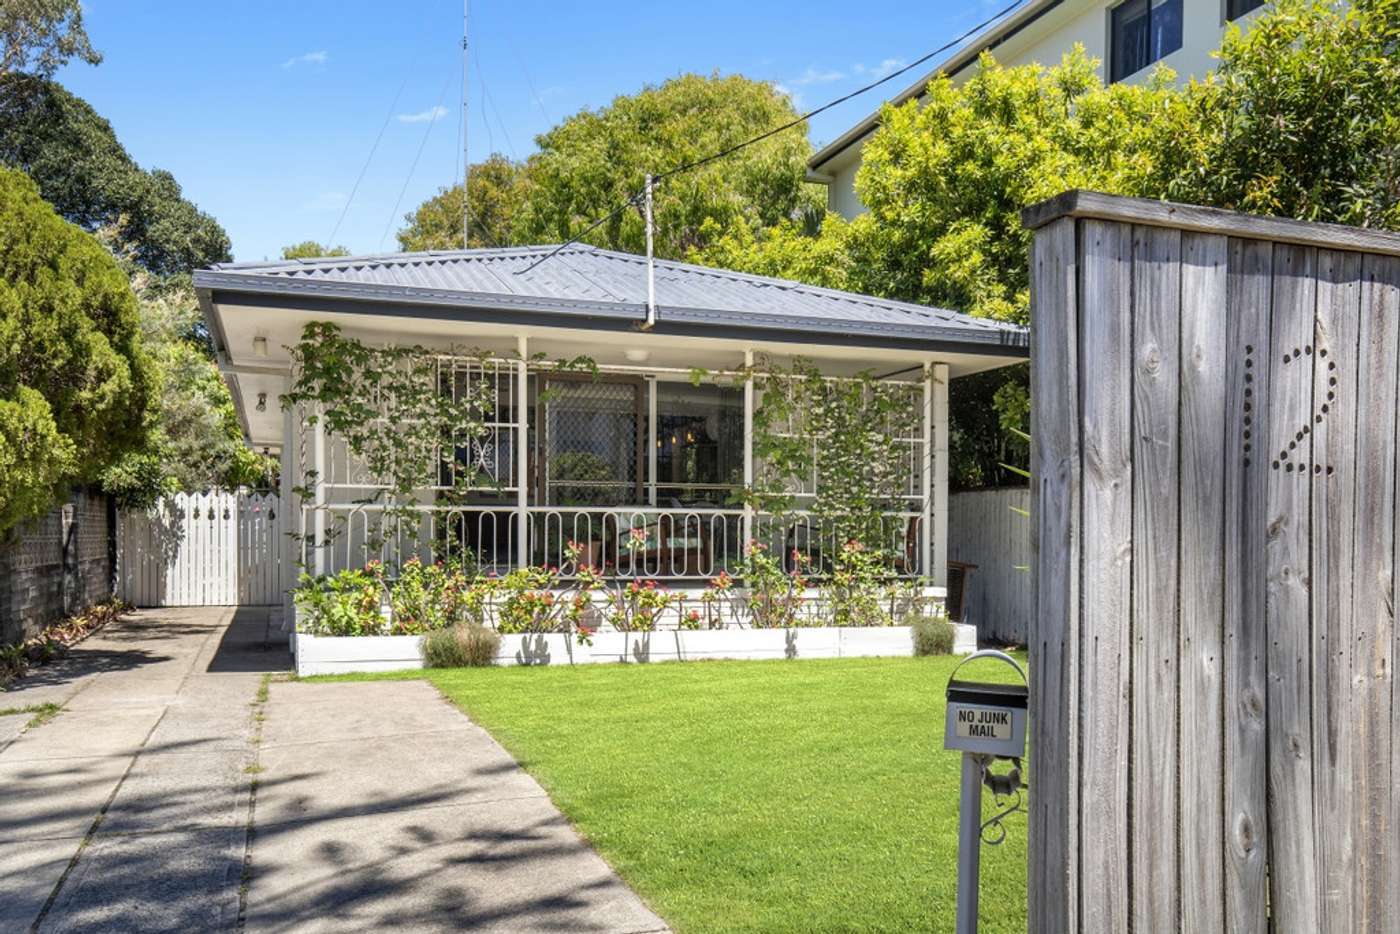 Main view of Homely house listing, 12 Markeri Street, Mermaid Beach QLD 4218